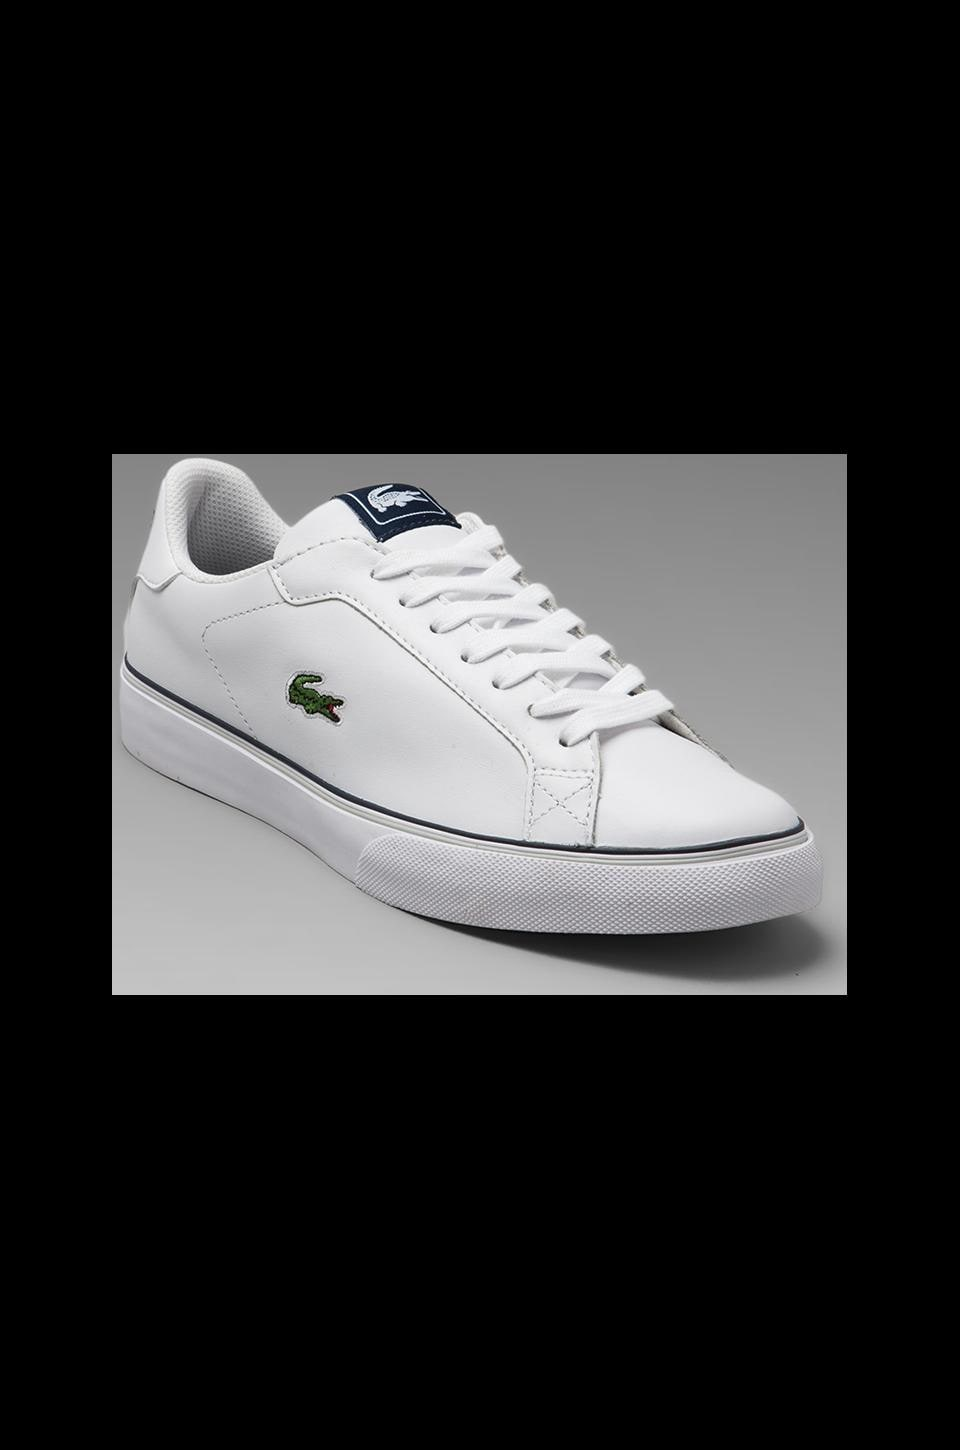 Lacoste Marling Low in White/Dark Blue